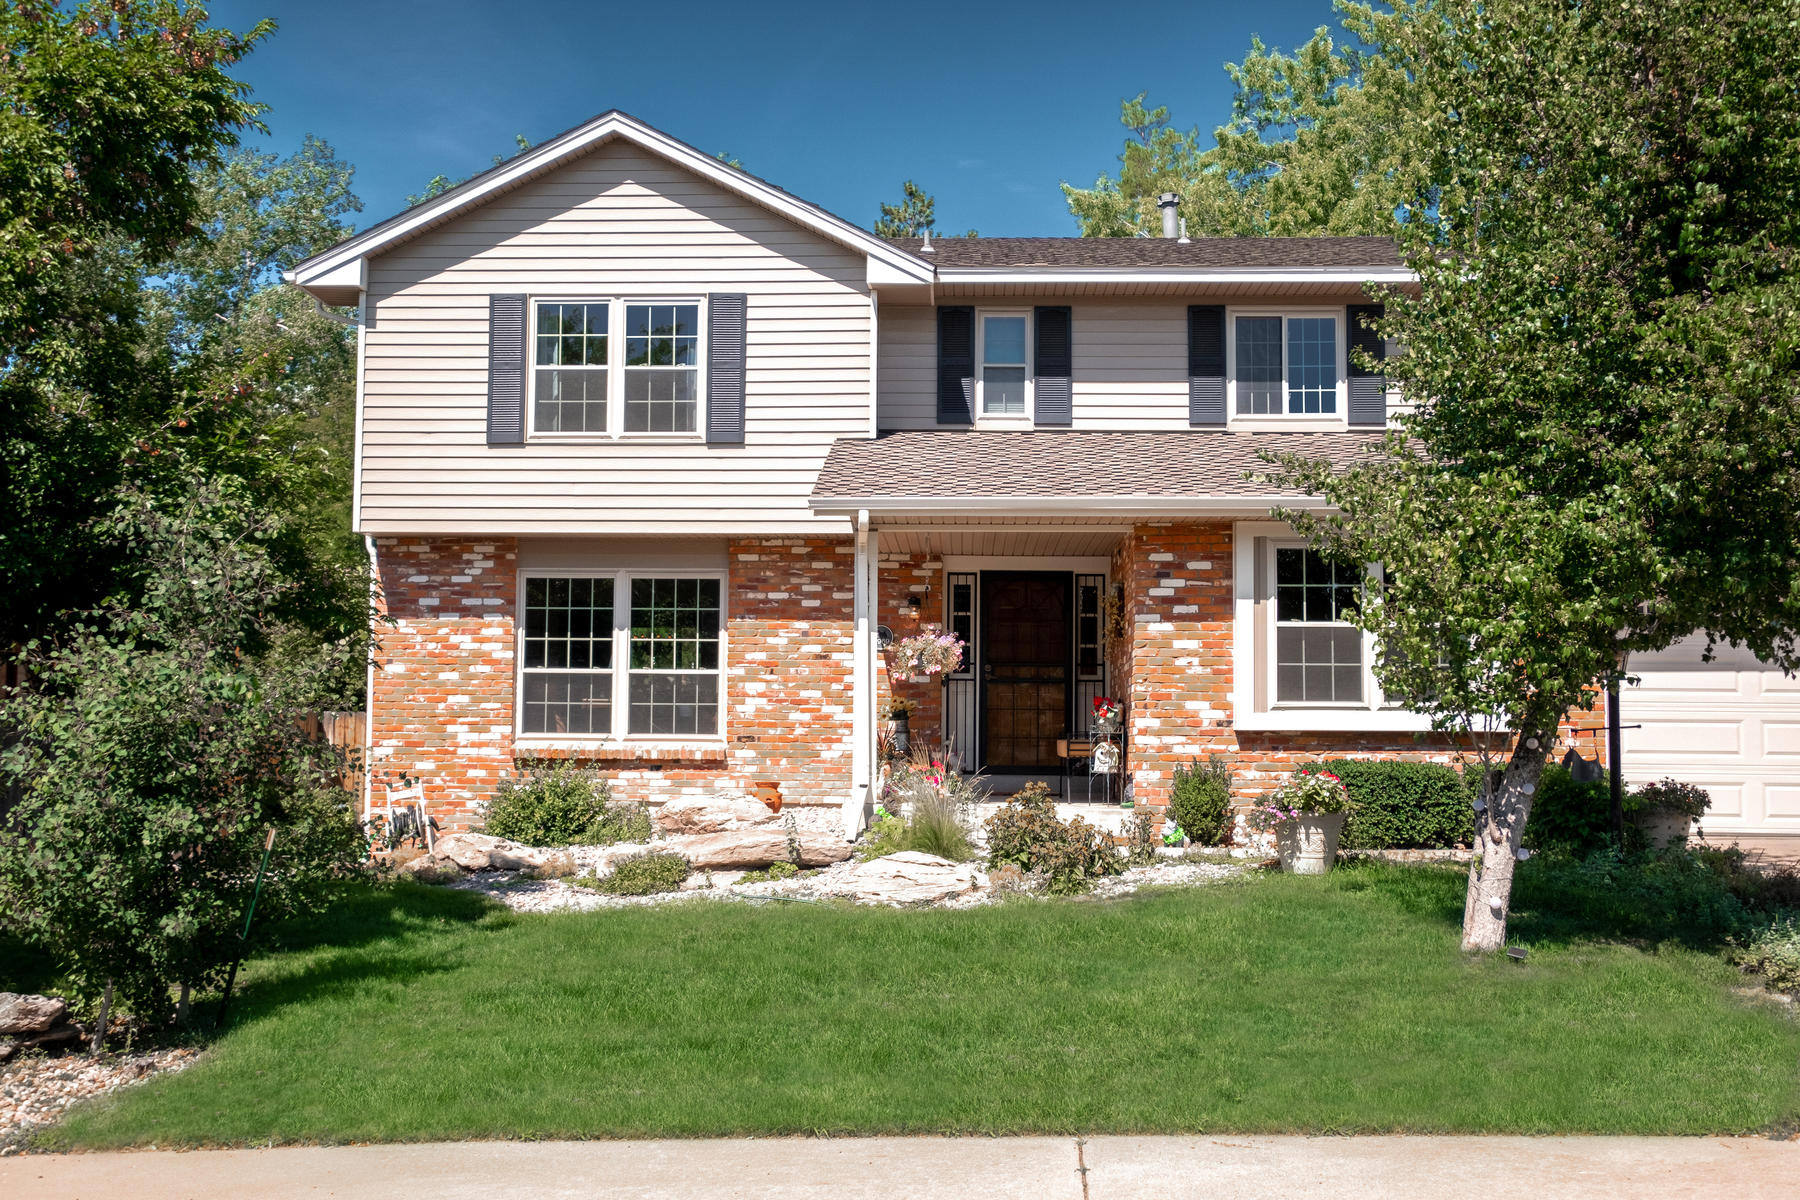 Single Family Homes por un Venta en Never been on the market before, this home has been loved and cared for 7969 S Monaco Ct, Centennial, Colorado 80112 Estados Unidos